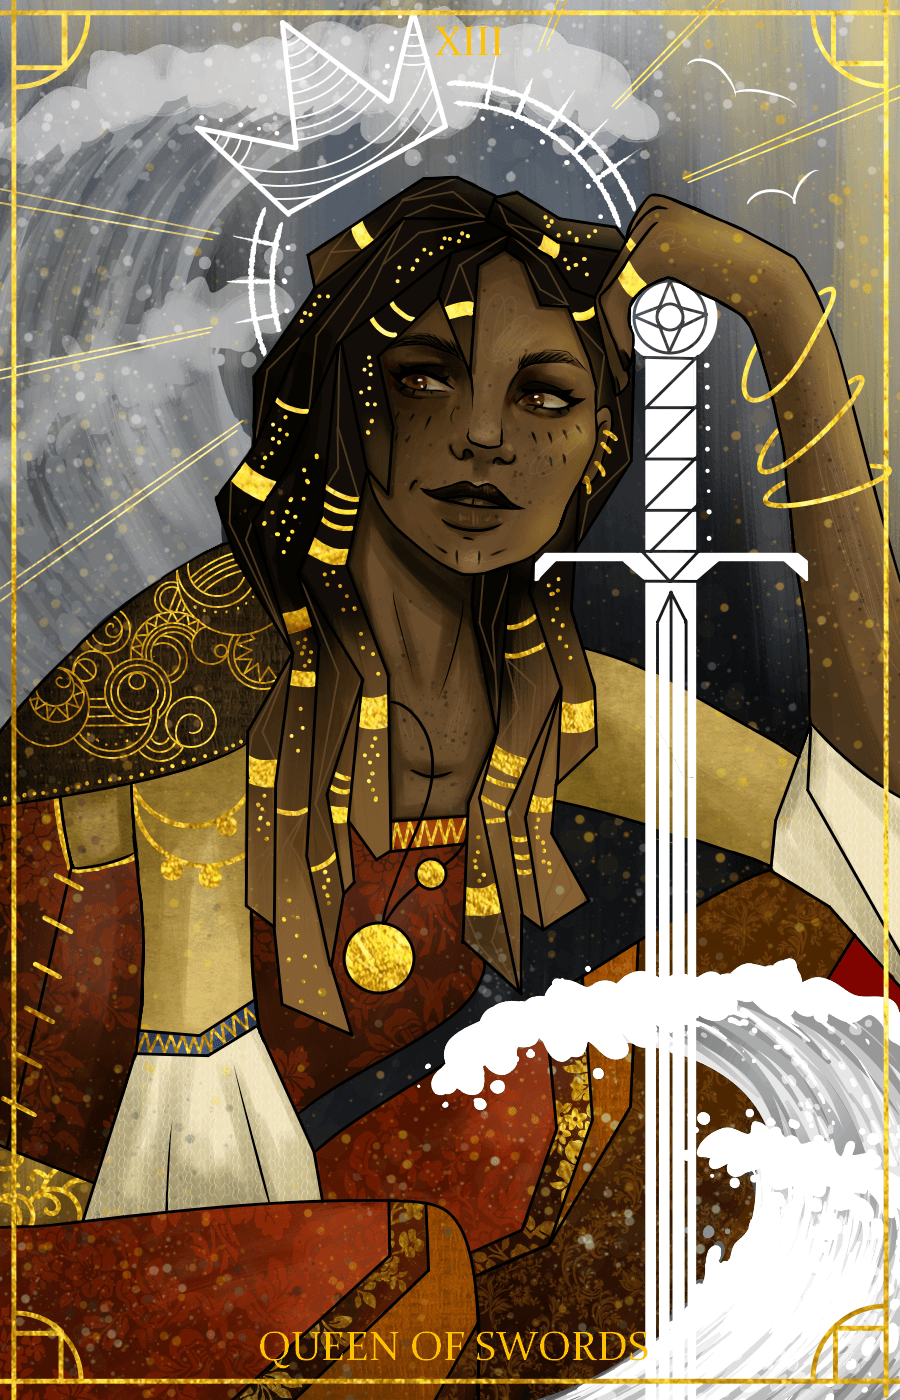 The Queen of Swords Commision piece